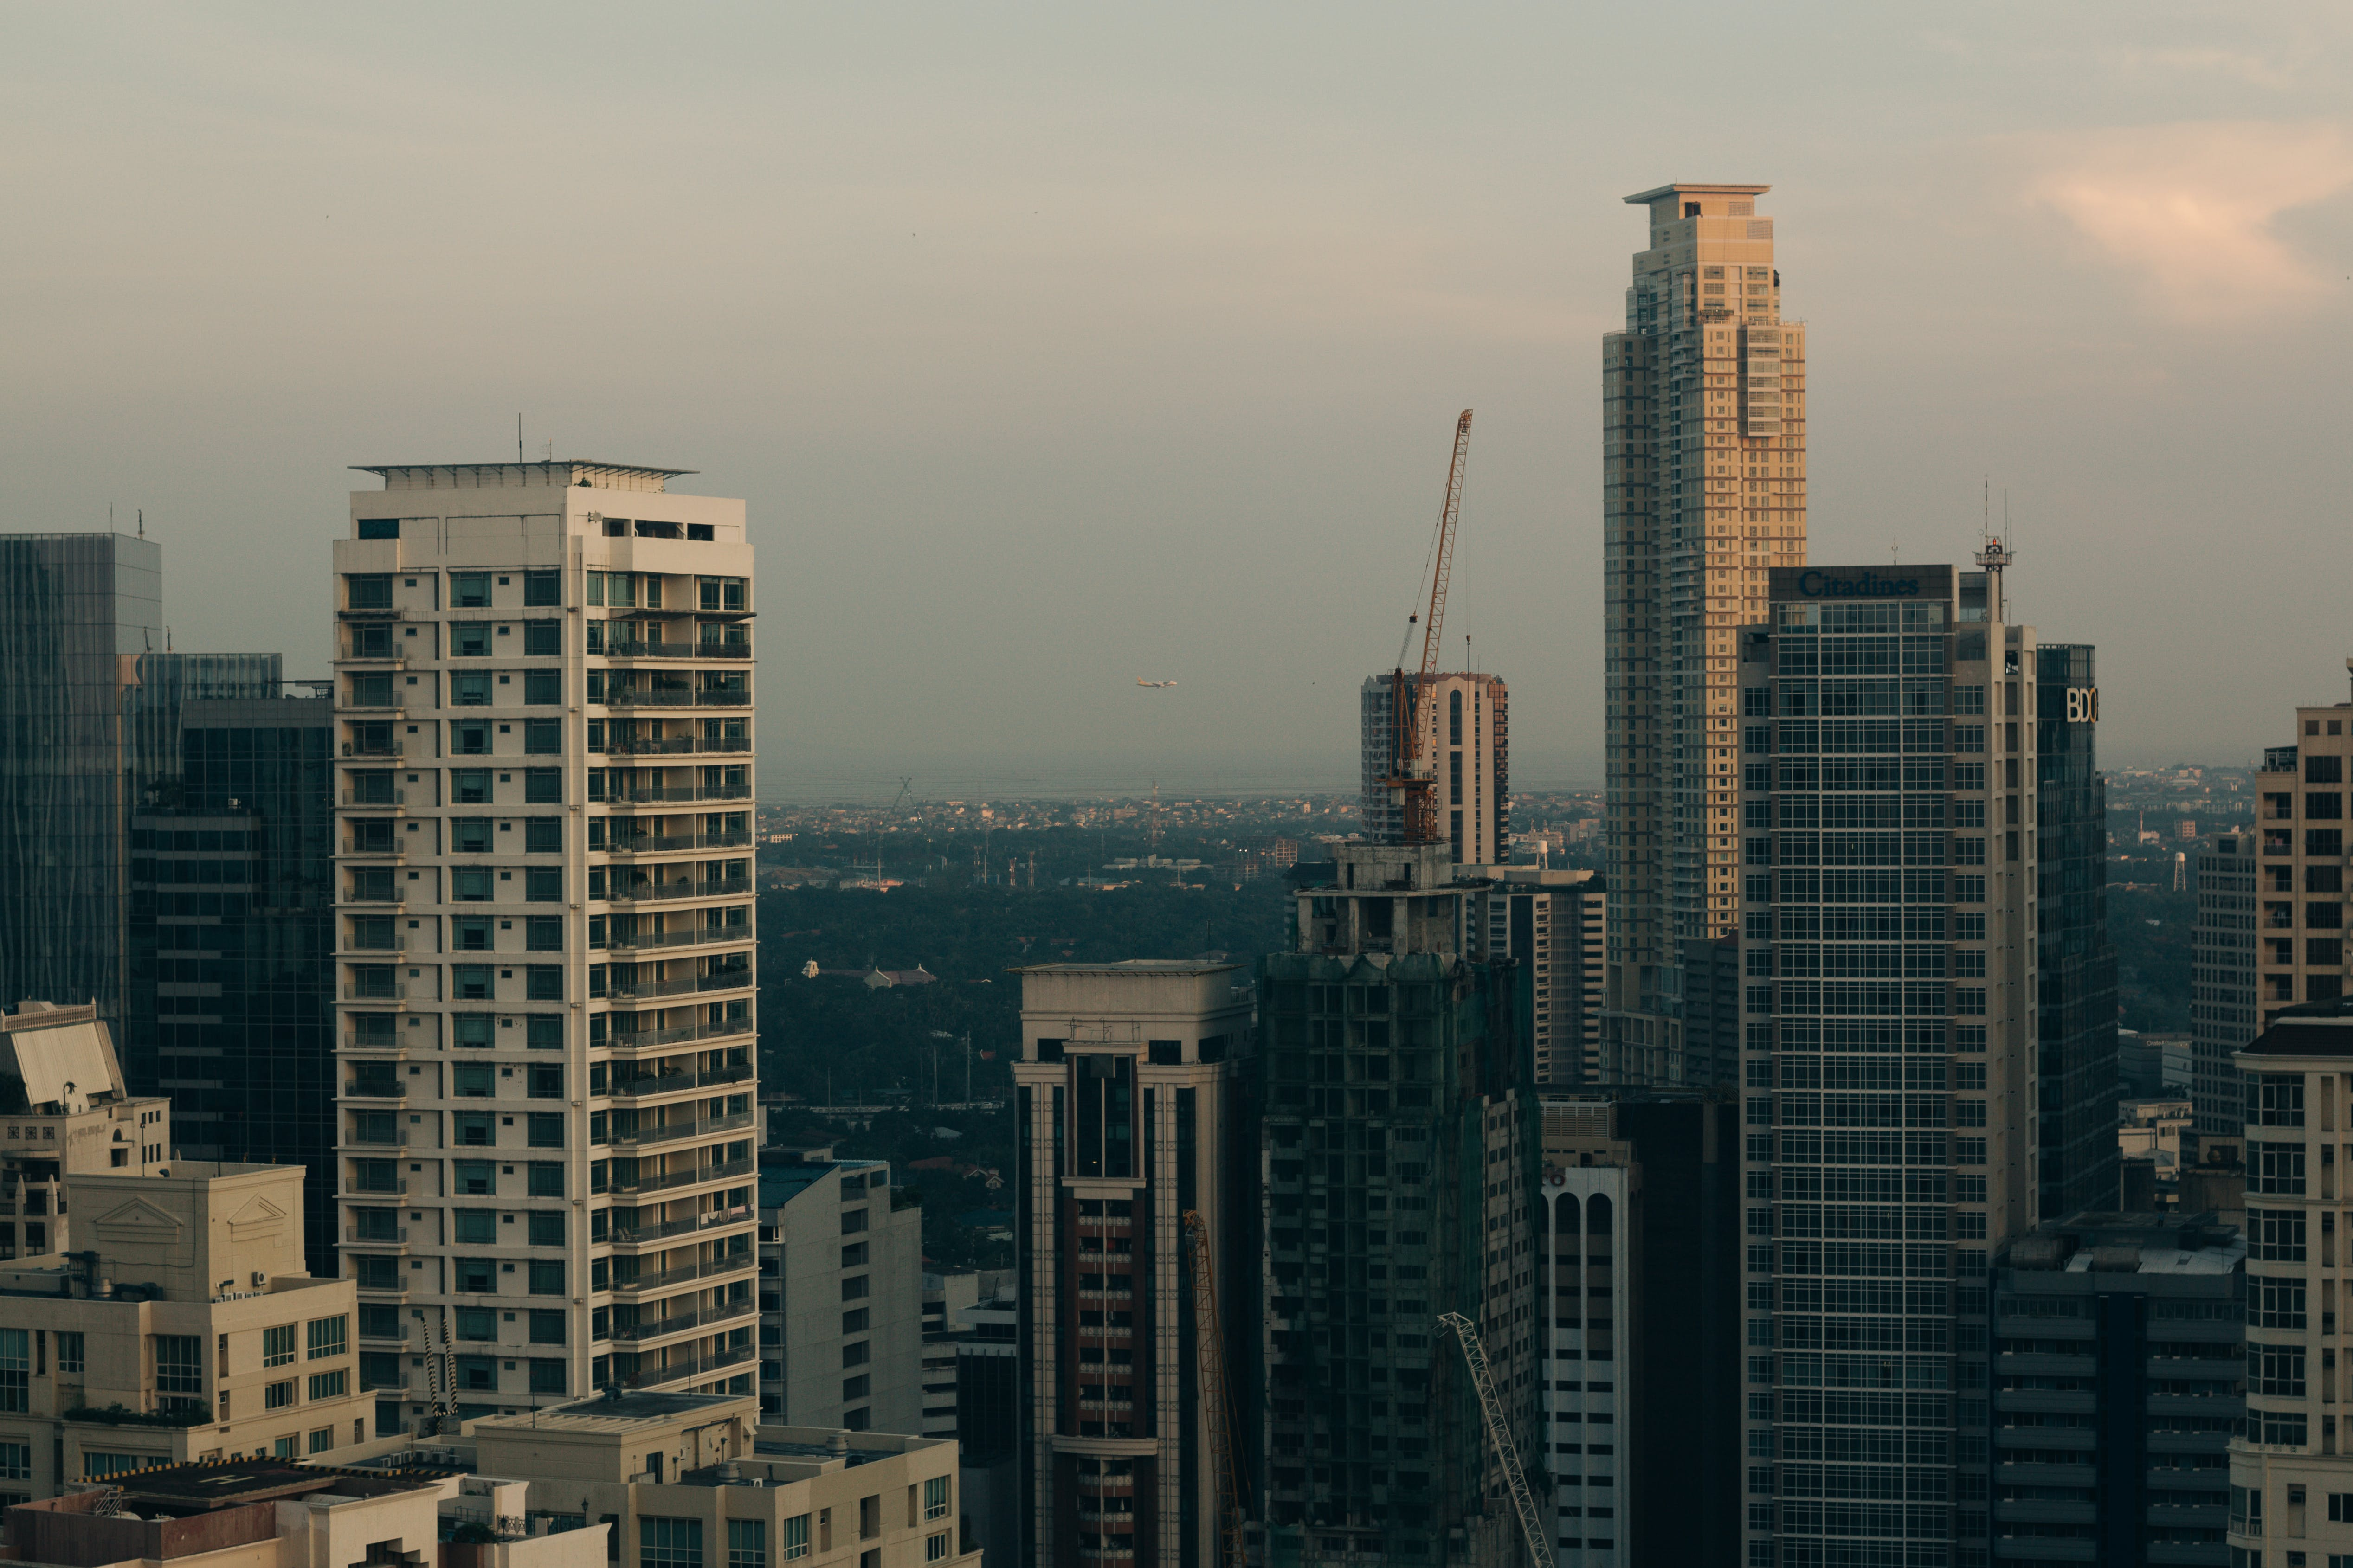 Aereal View of Skyscrapers in the City during Daytime